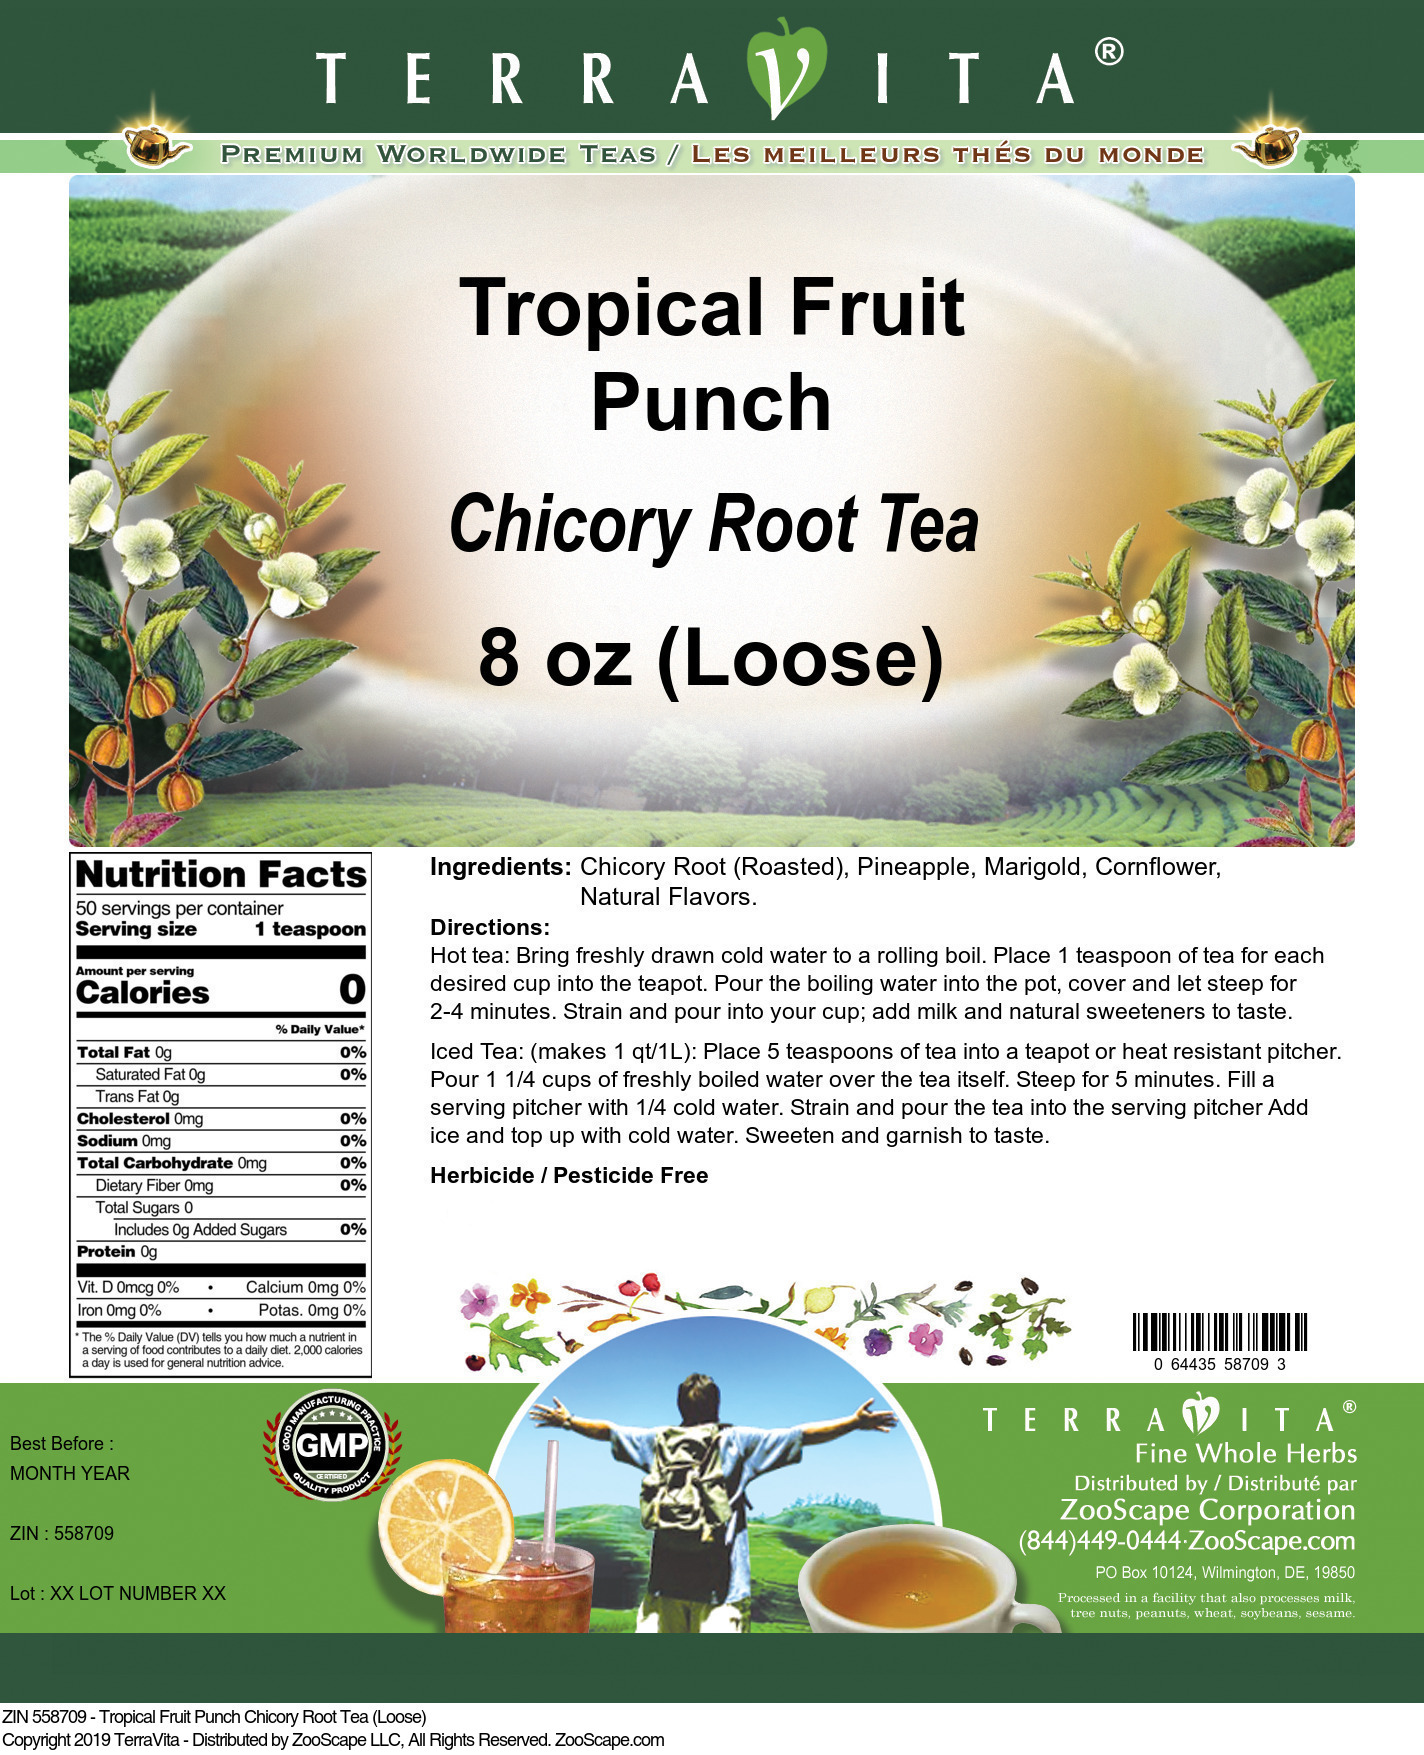 Tropical Fruit Punch Chicory Root